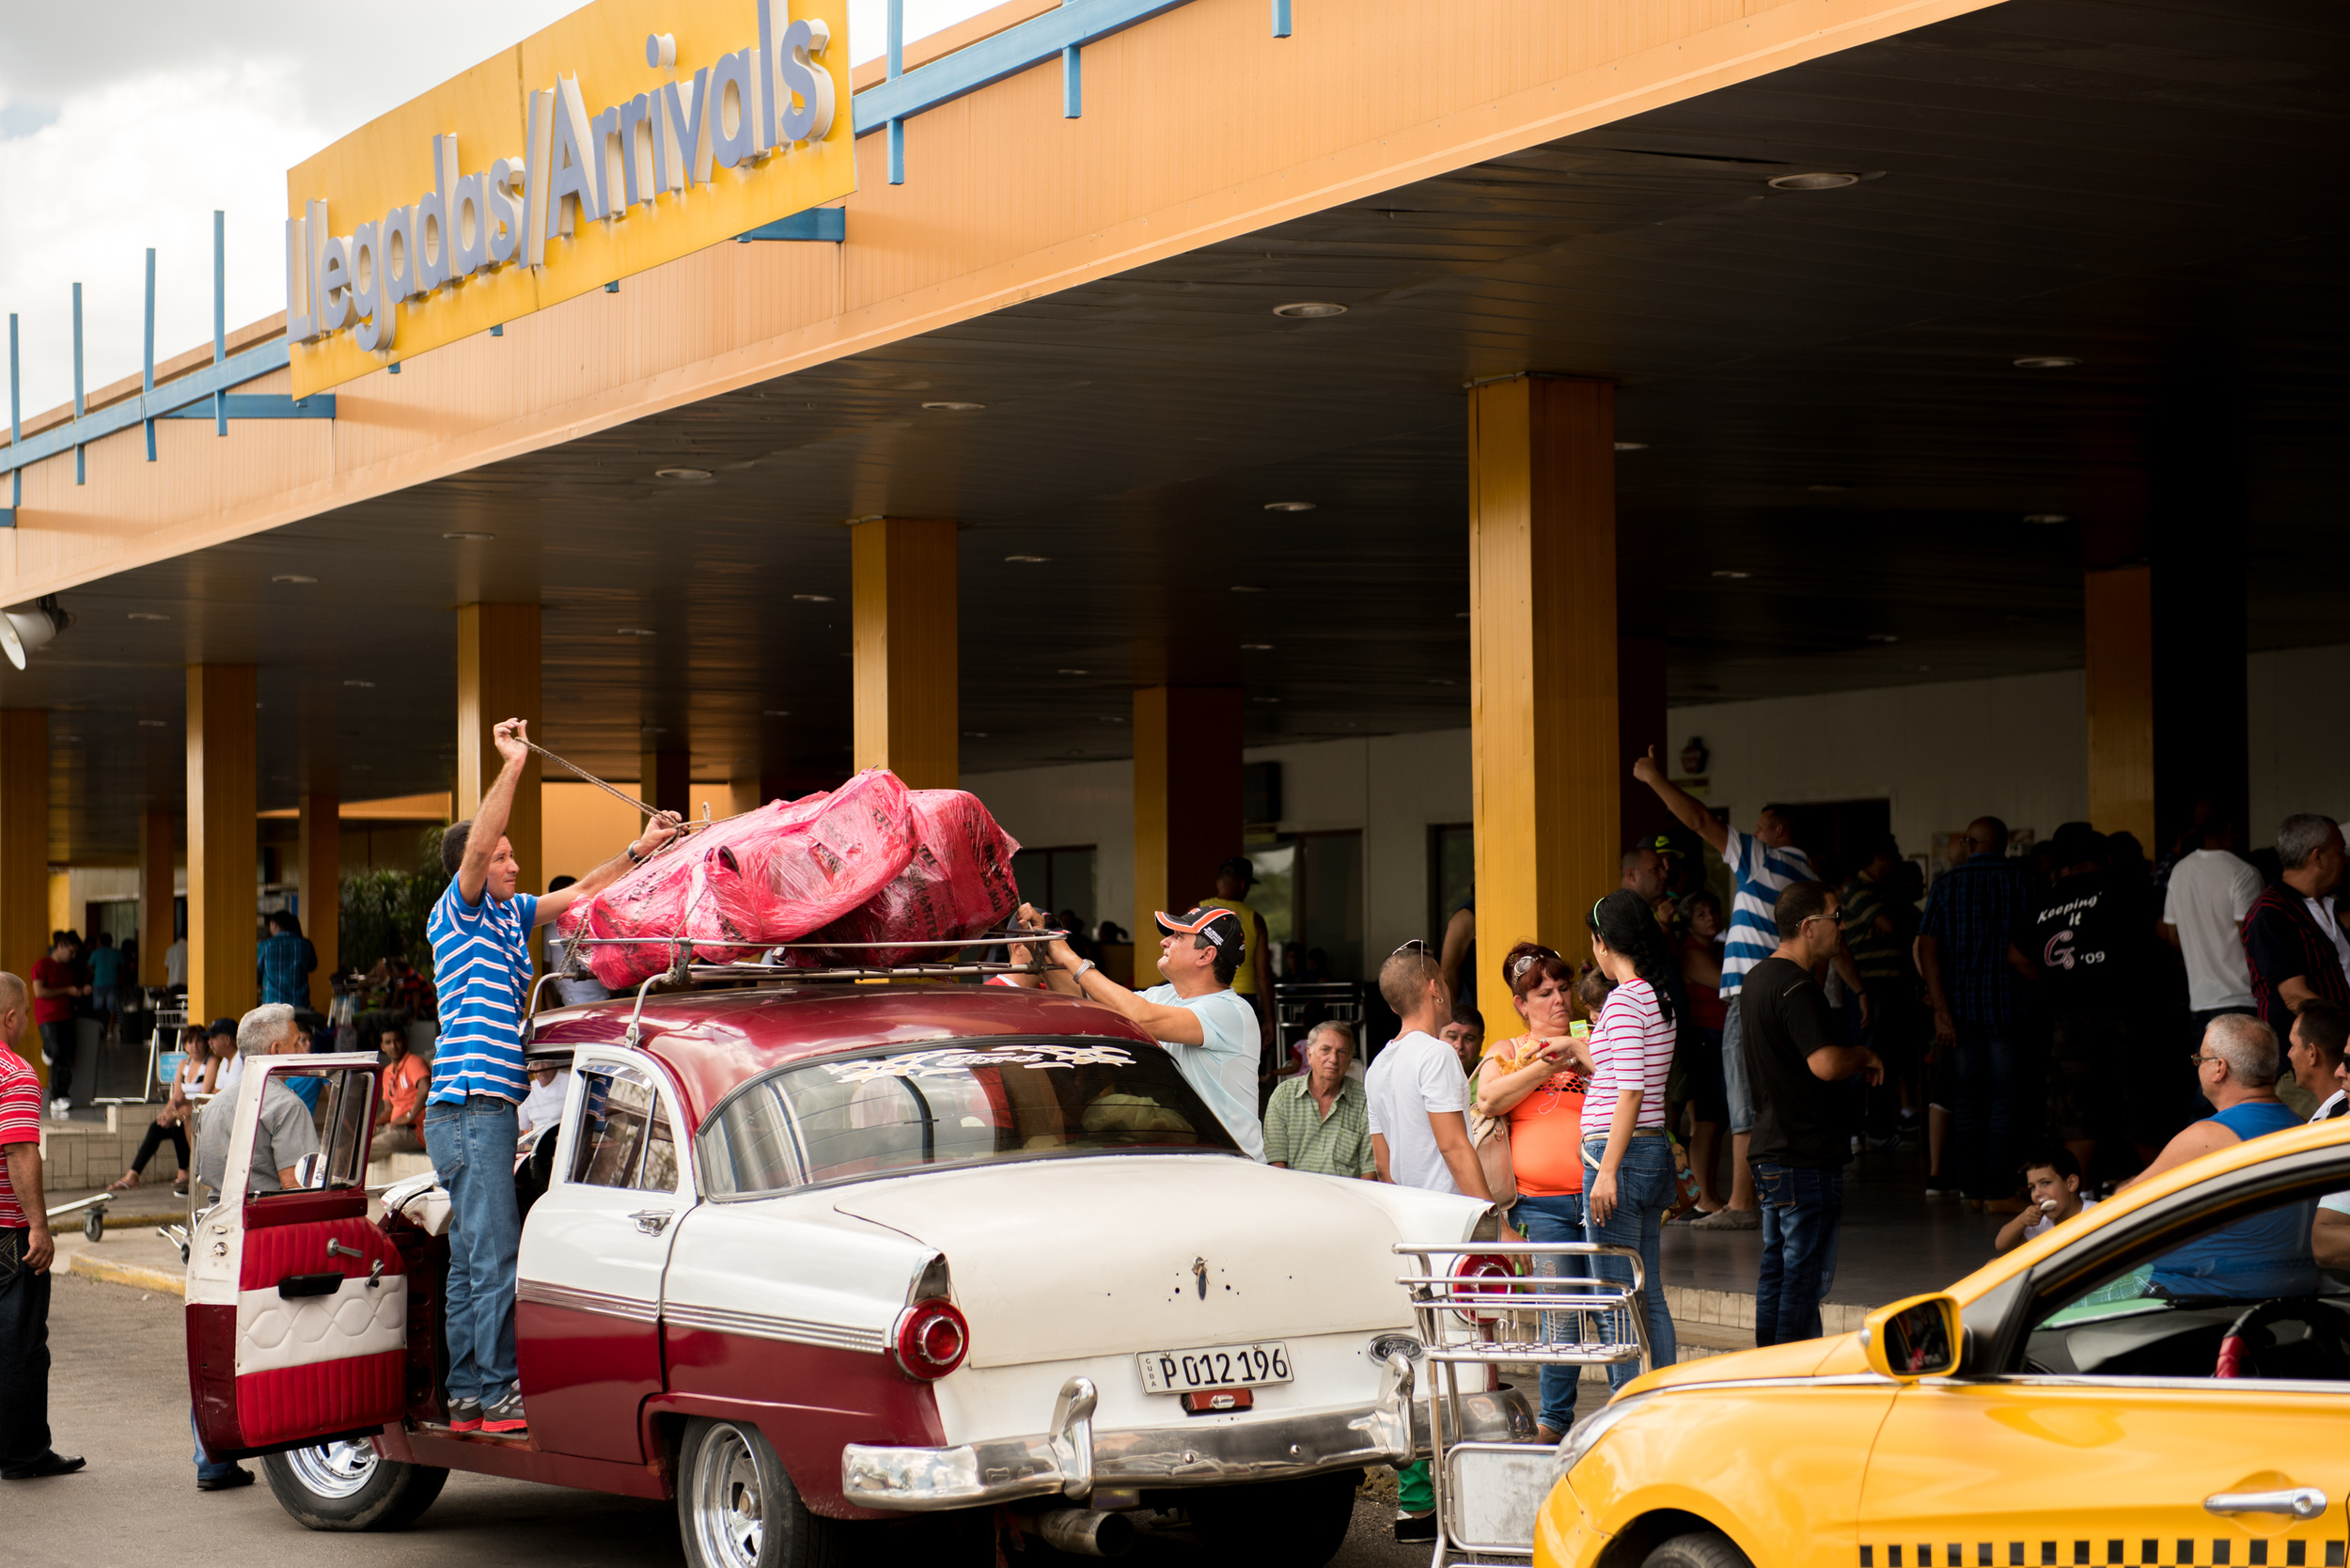 Heat, humidity, and old cars greeted the orchestra members as they arrived in Cuba.